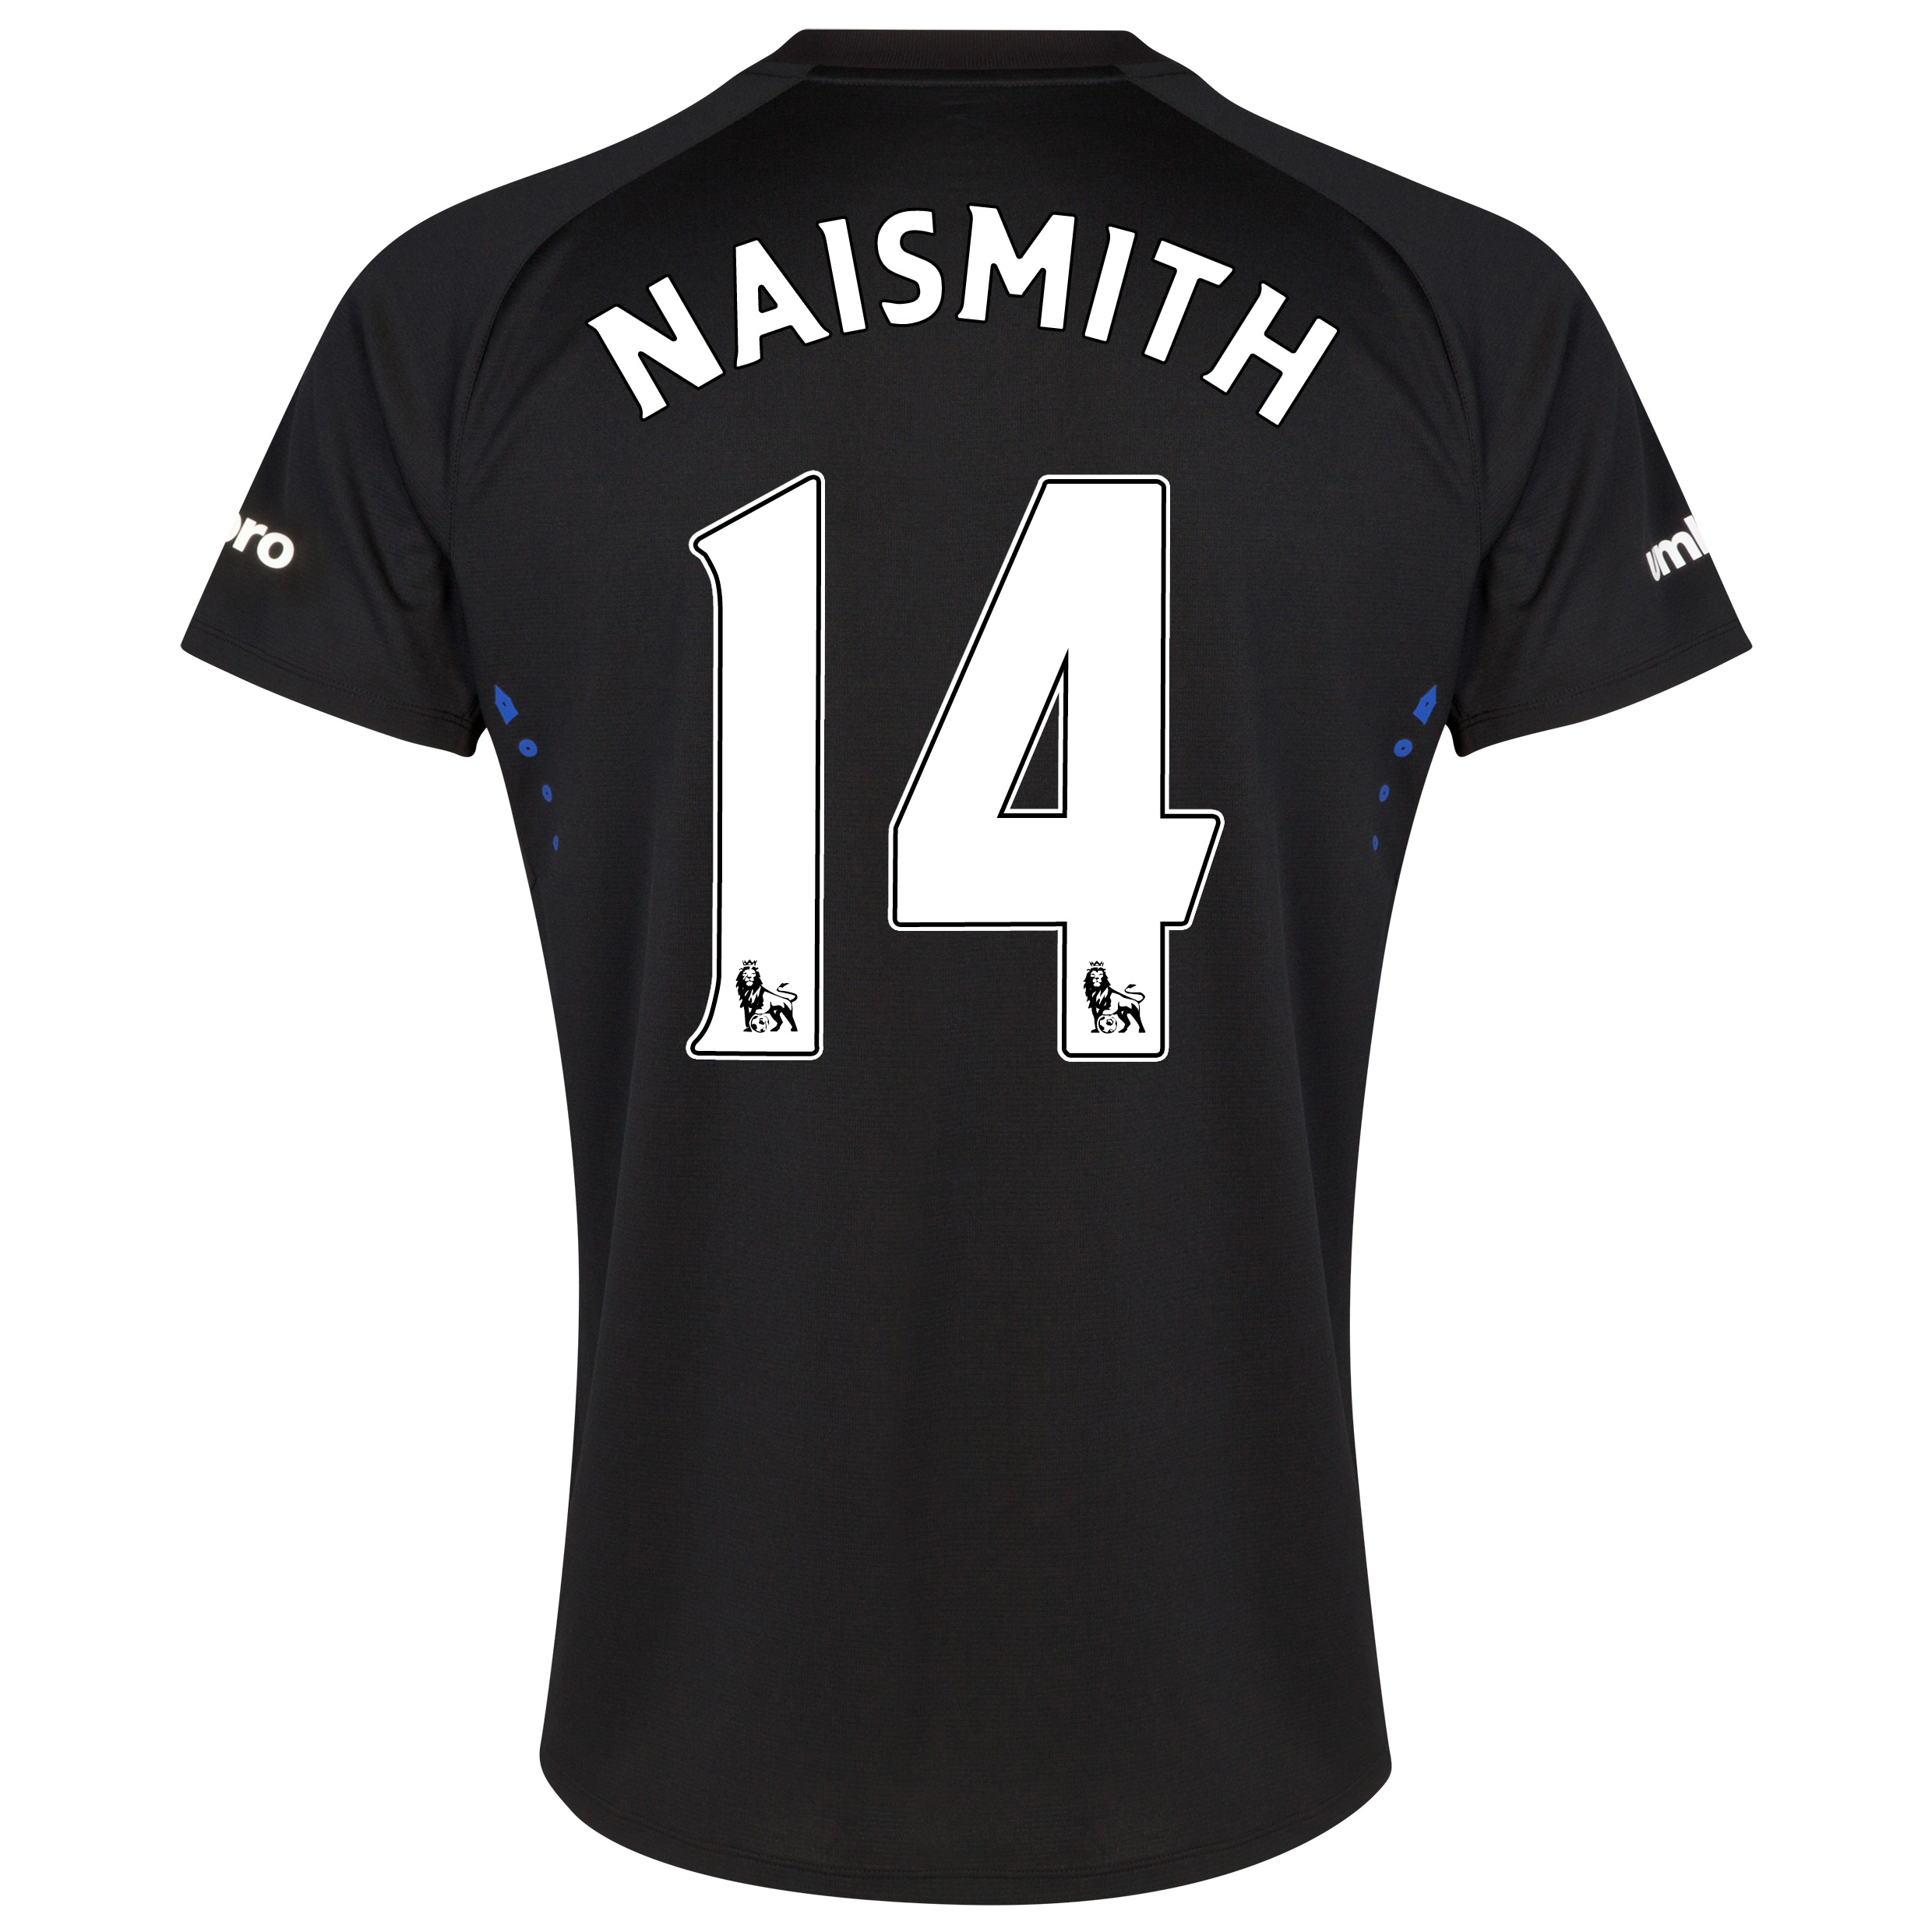 Everton SS Away Shirt 2014/15 - Junior with Naismith 14 printing